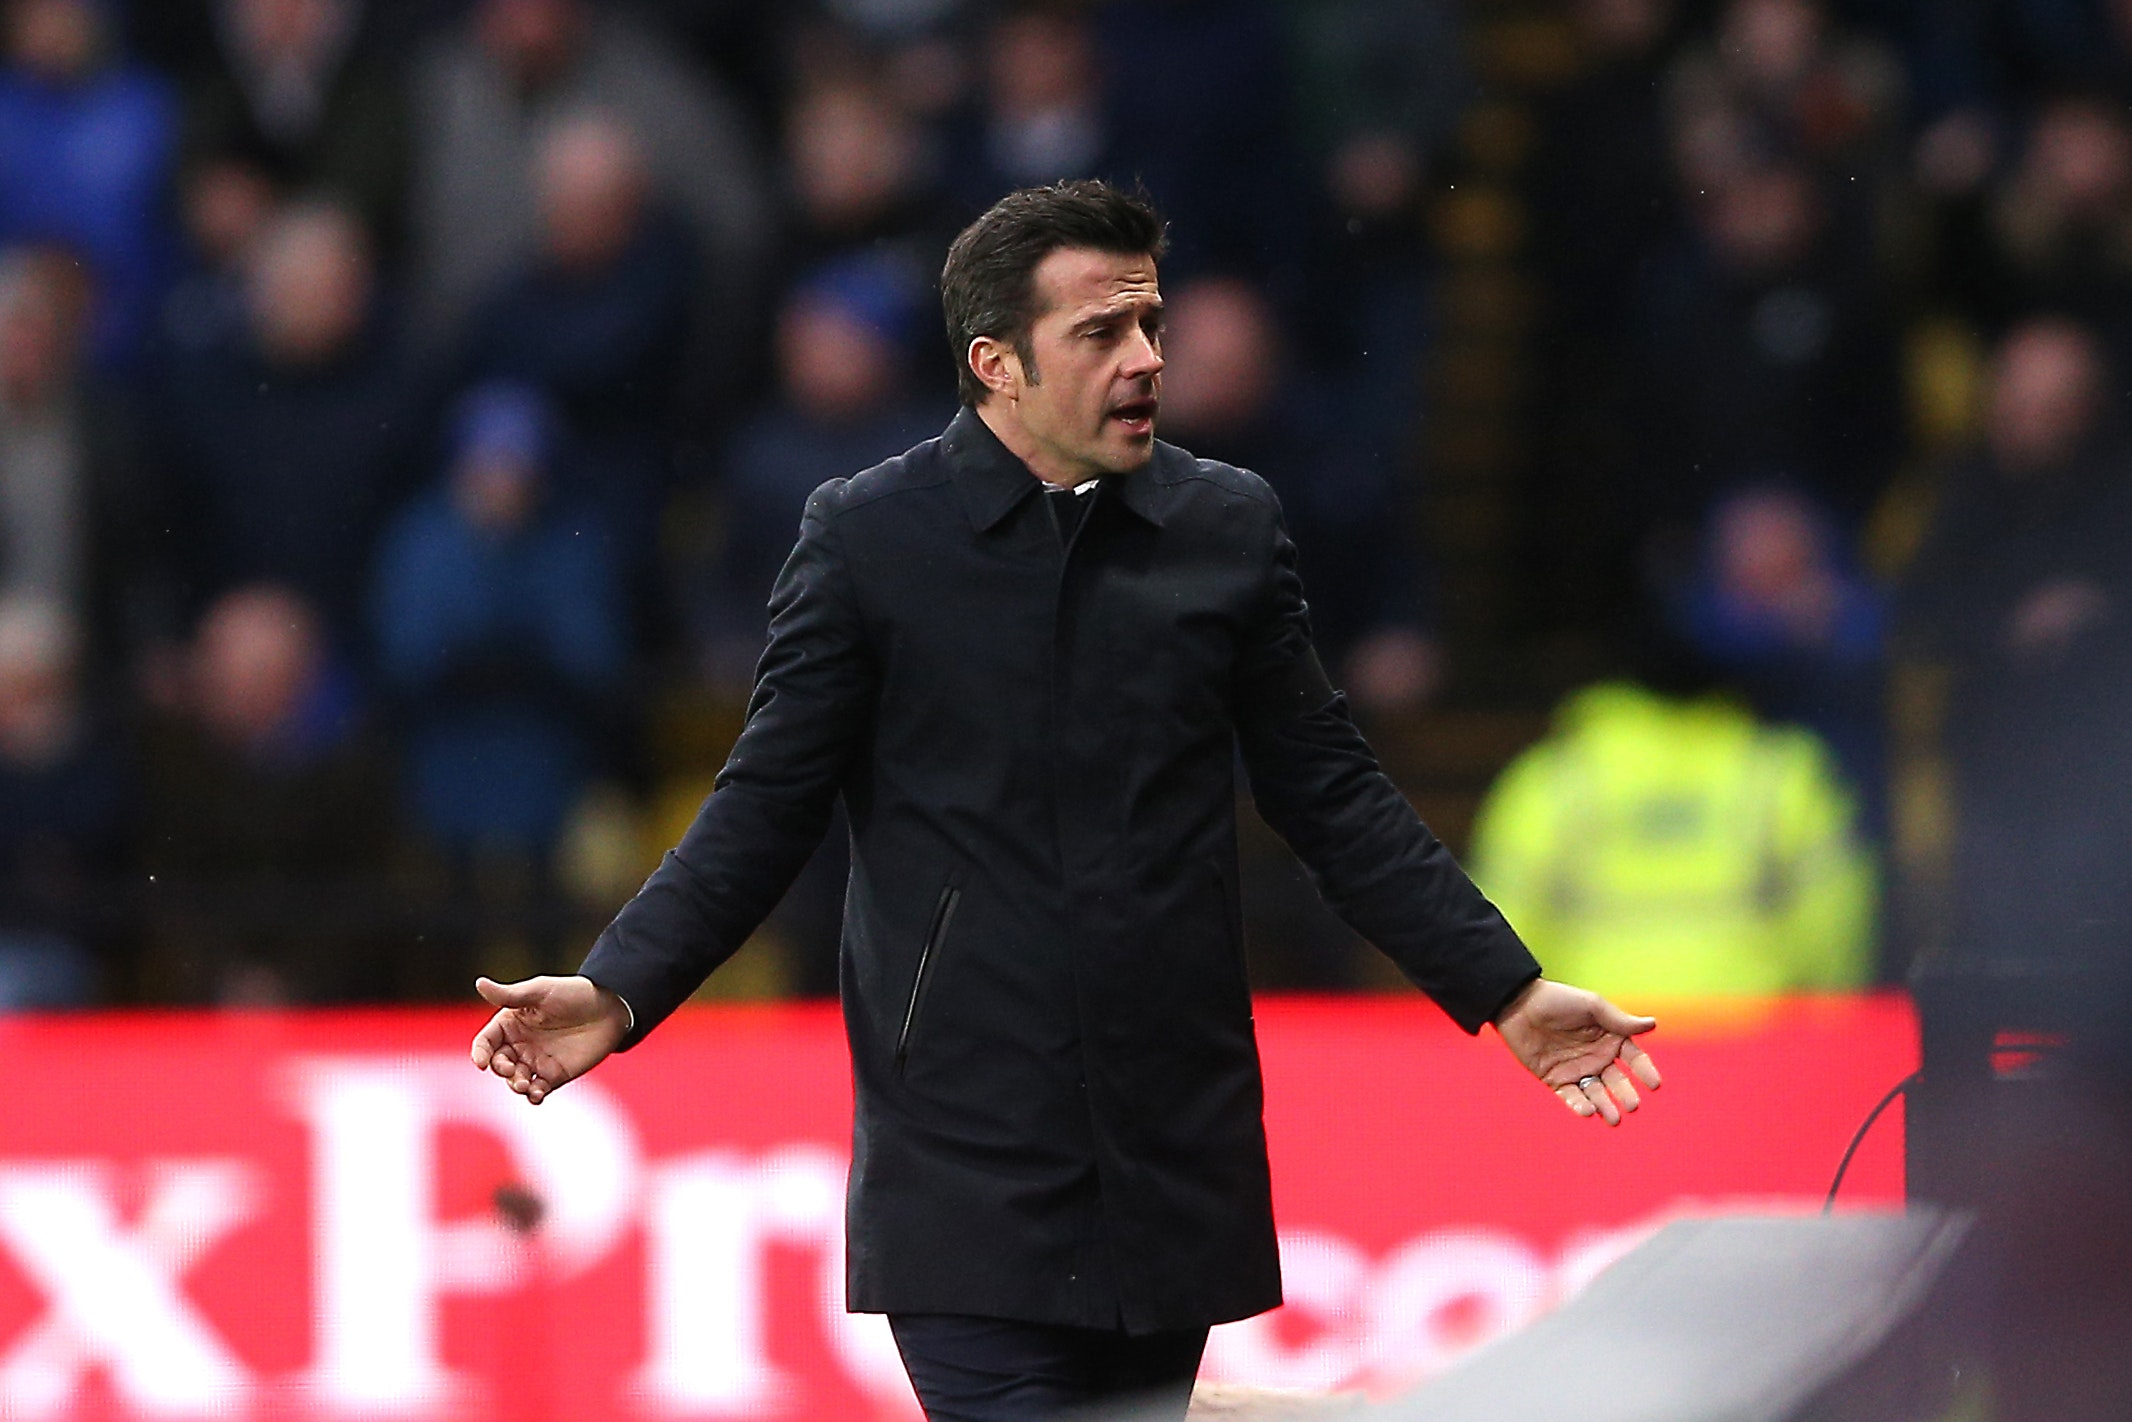 Marco Silva tasted defeat on his return to Vicarage Road